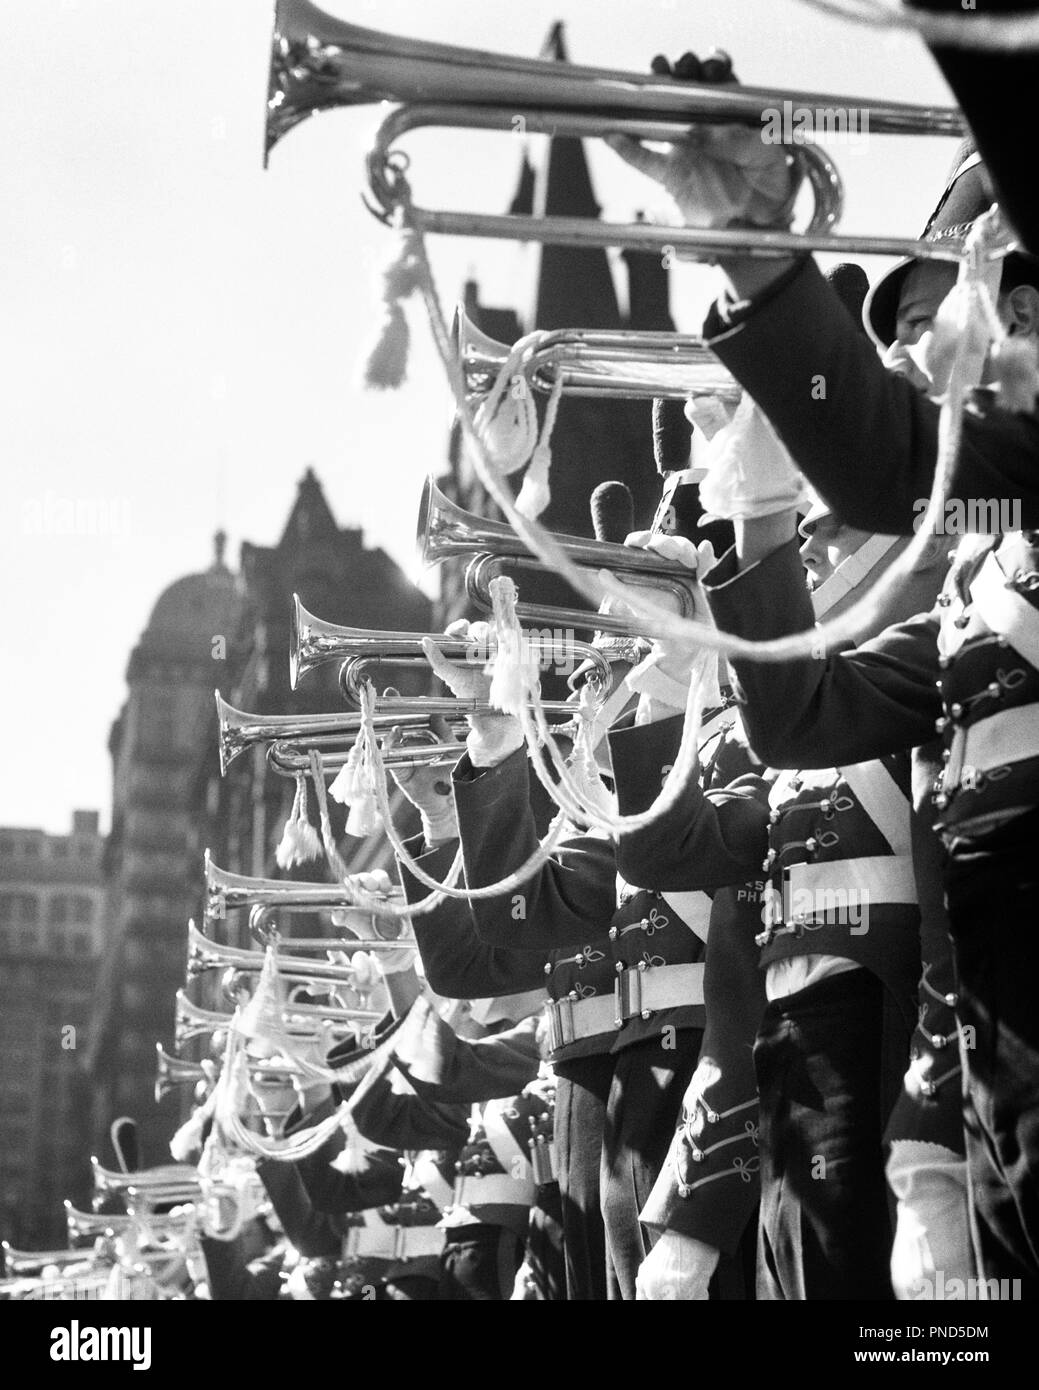 1930s MUSICAL INSTRUMENTS MARCHING MILITARY BRASS BAND IN UNIFORMS HERALDING PLAYING FLOURISHES ON BUGLES - m4476 HAR001 HARS B&W HORNS FREEDOM PERFORMING OCCUPATION HAPPINESS UNIVERSITIES CAREERS LOUD LOW ANGLE PRIDE ON OCCUPATIONS HERALDING HIGHER EDUCATION CADETS COLLEGES BUGLE SYMBOLIC COOPERATION CORPS PAGEANTRY PLAYED PRECISION TOGETHERNESS YOUNG ADULT MAN BLACK AND WHITE BUGLES CEREMONIAL HAR001 OLD FASHIONED PARADES REPRESENTATION TRUMPETS Stock Photo